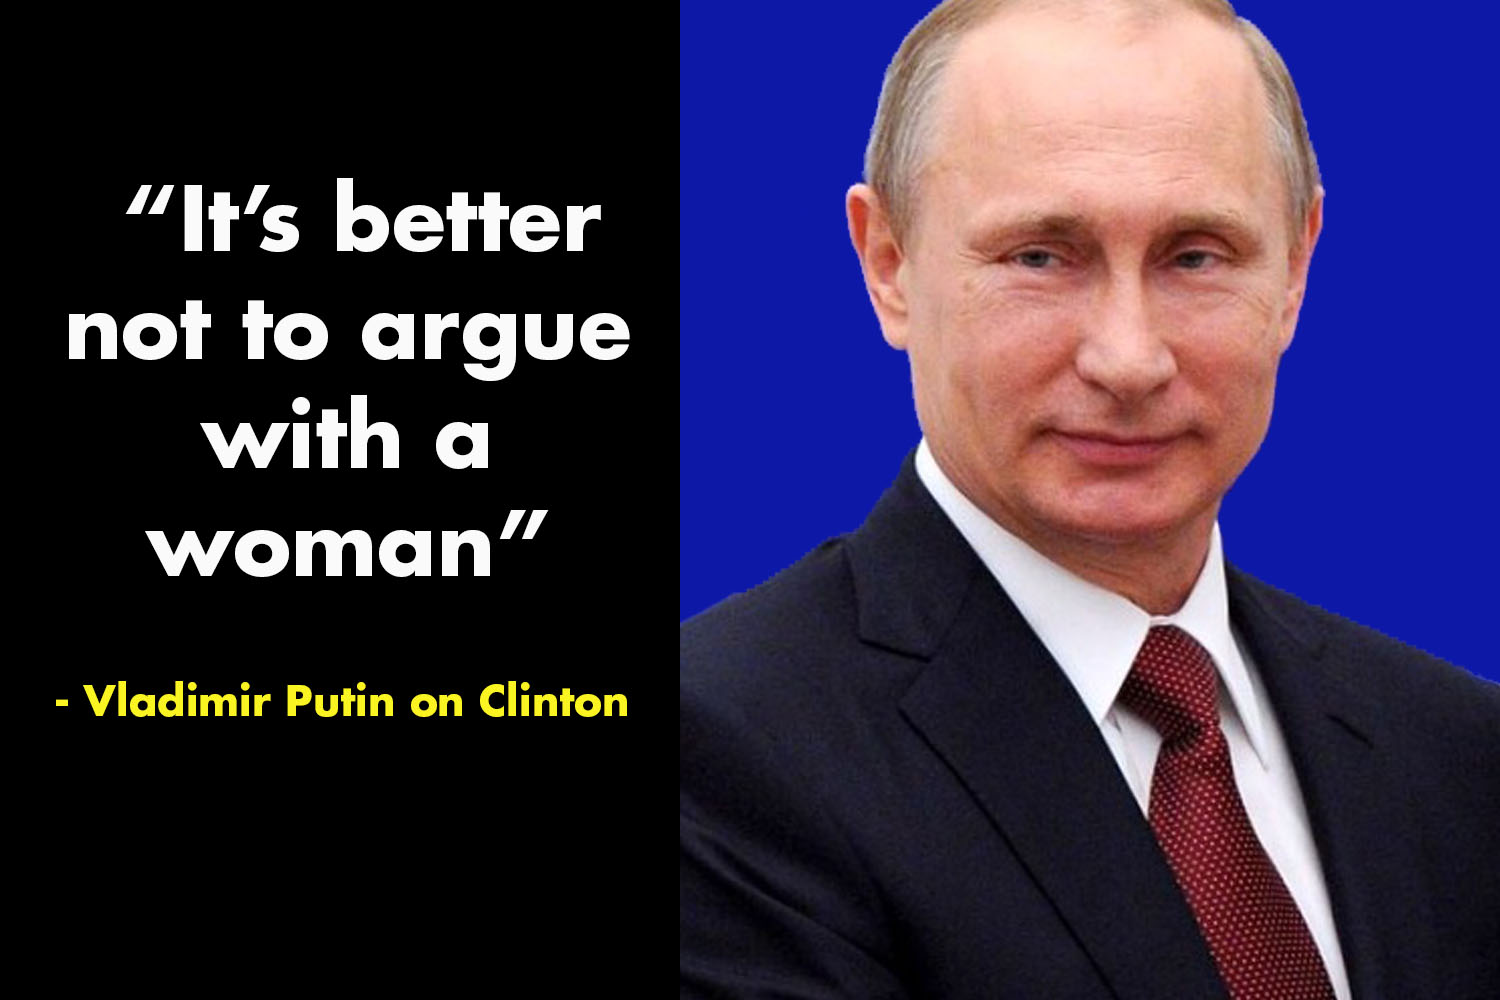 putin-on-clinton